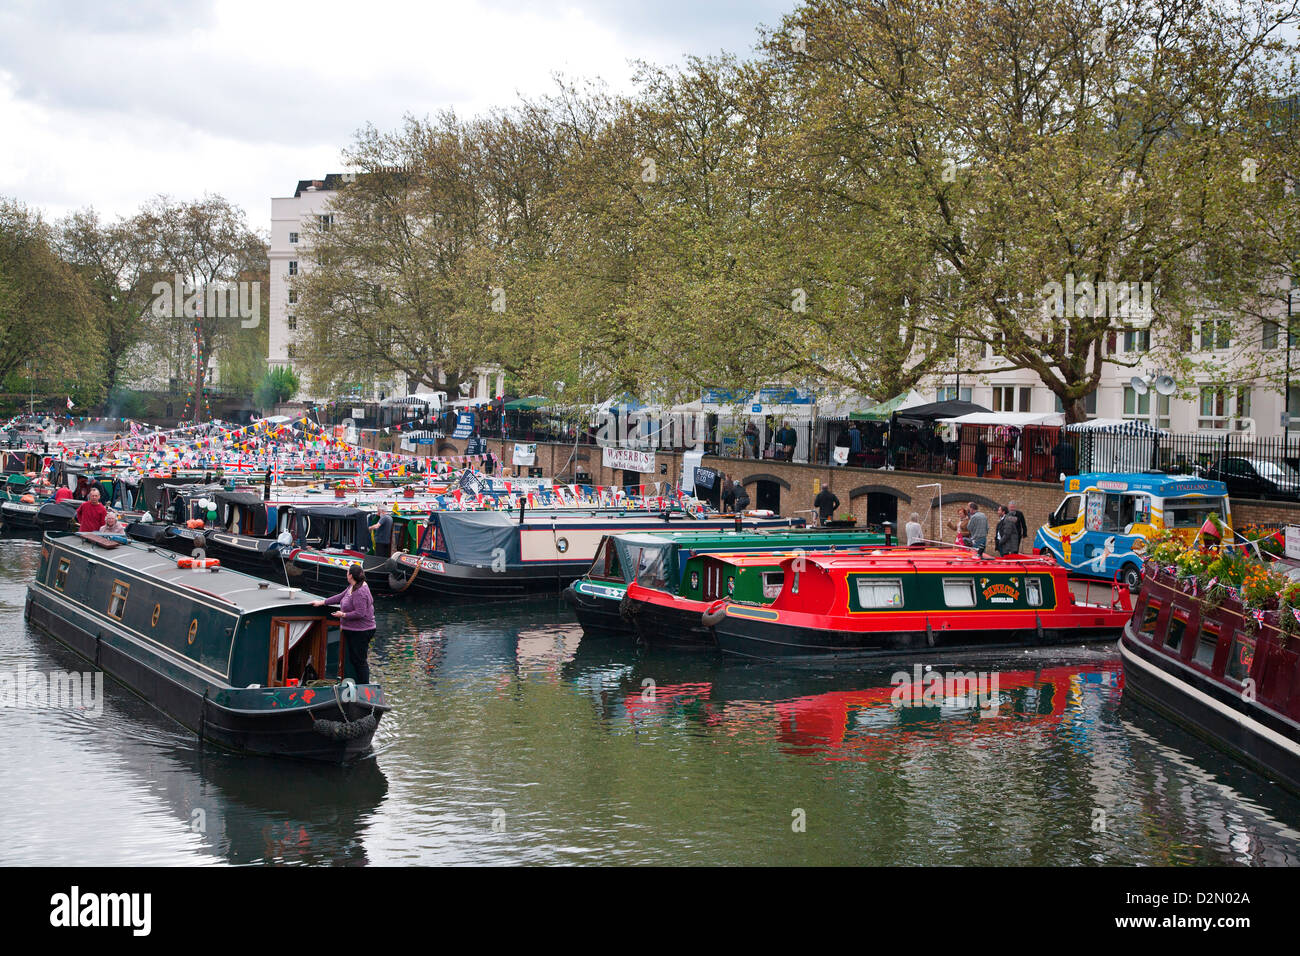 Houseboats on the Grand Union Canal, Little Venice, Maida Vale, London, England, United Kingdom, Europe - Stock Image